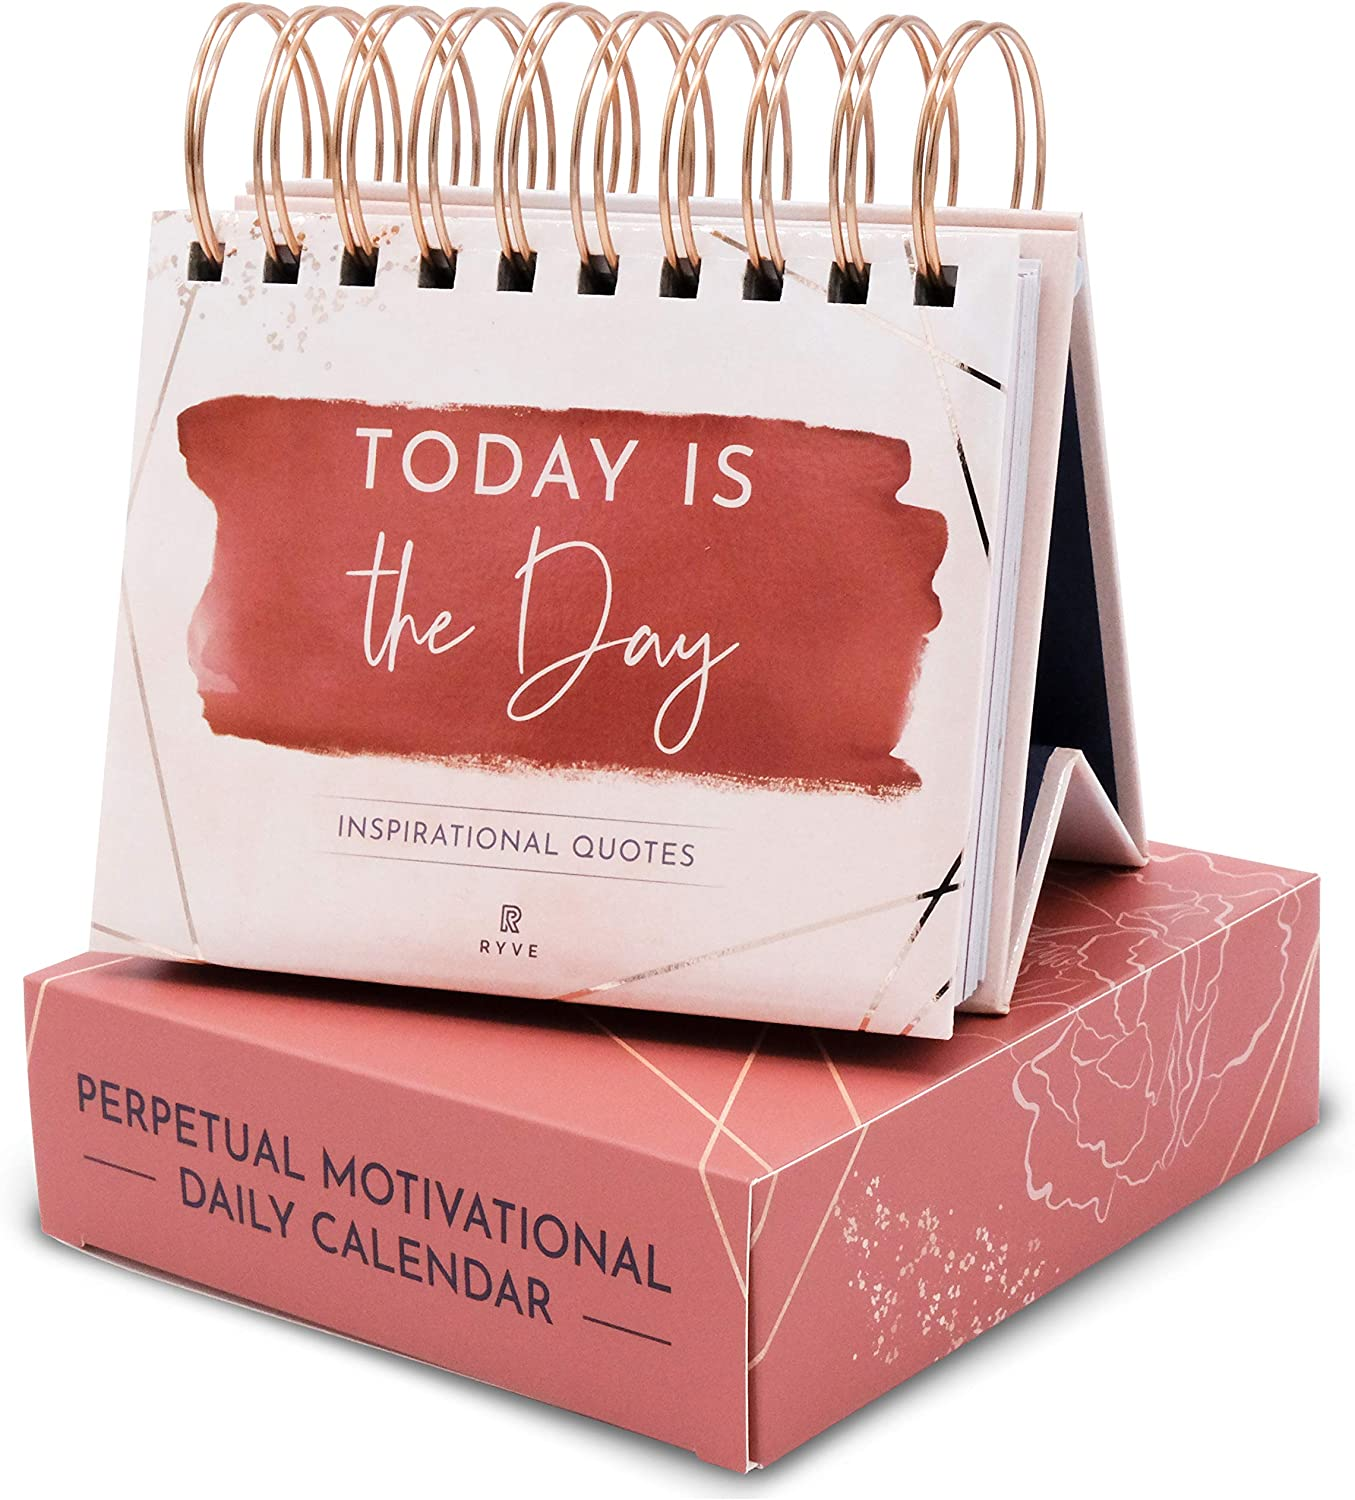 RYVE Motivational Calendar - Daily Flip Calendar with Inspirational Quotes - Inspirational Calendar, Motivational Quotes, Inspirational Desk Decor for Women, Inspirational Office Decor for Women Desk